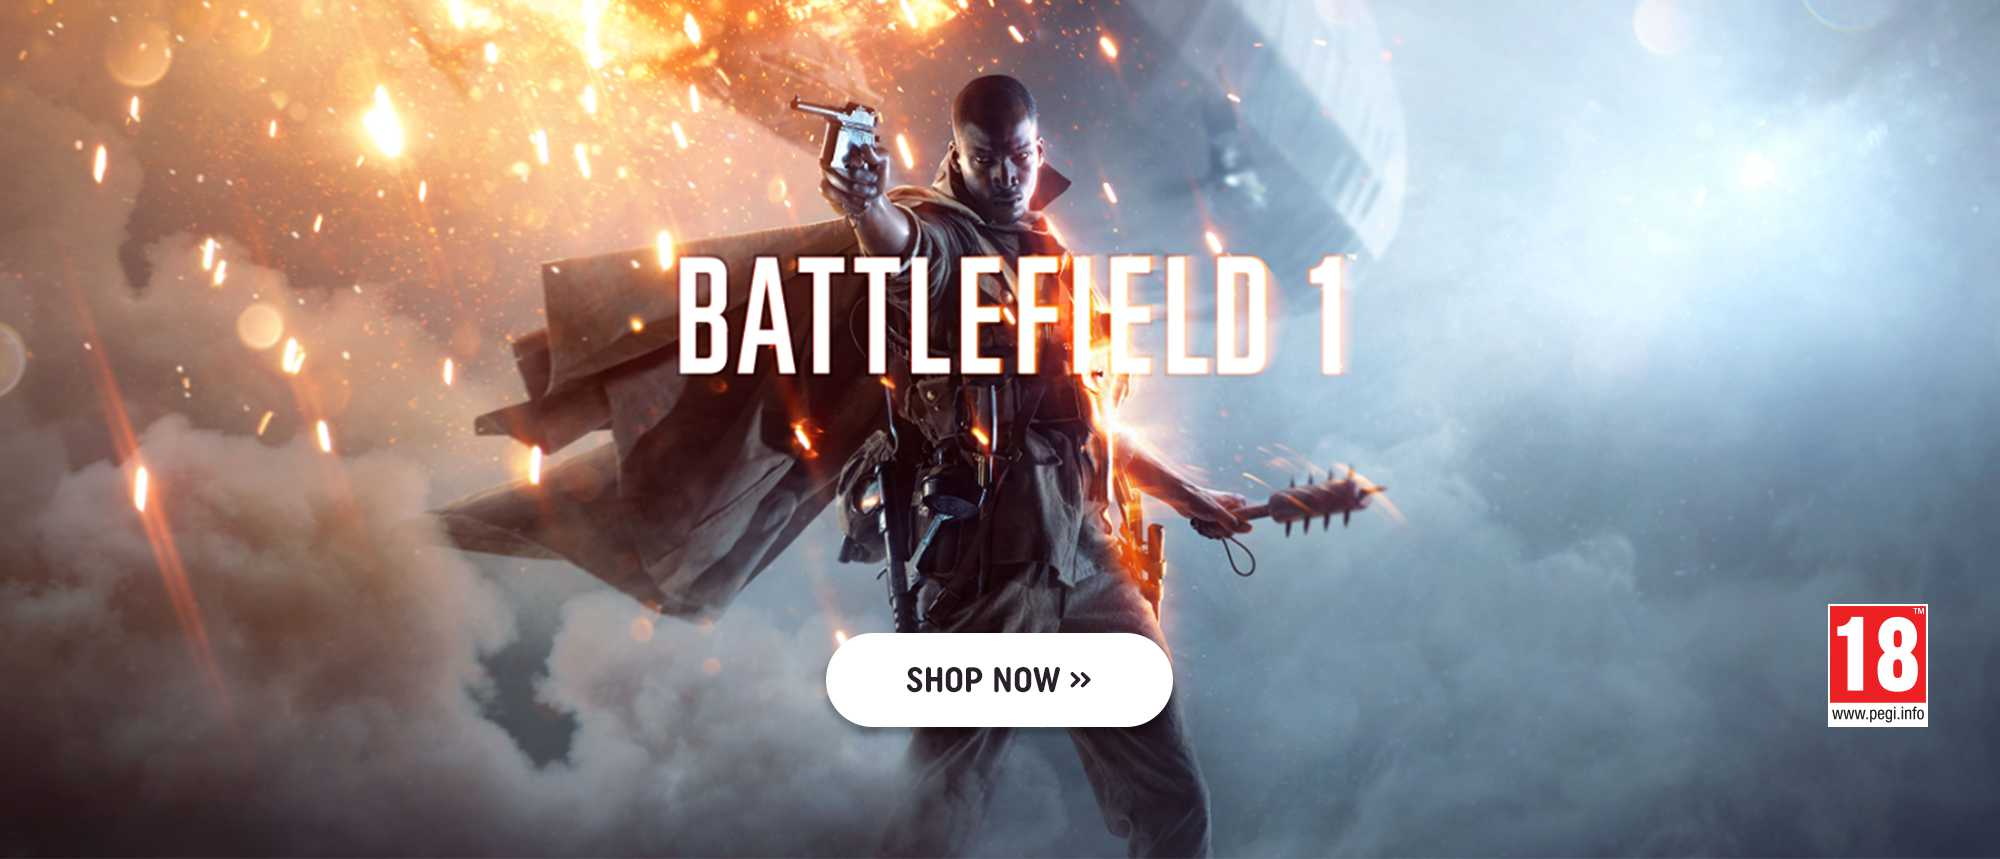 Shop All Battlefield 1 At Smyths Toys Superstores!